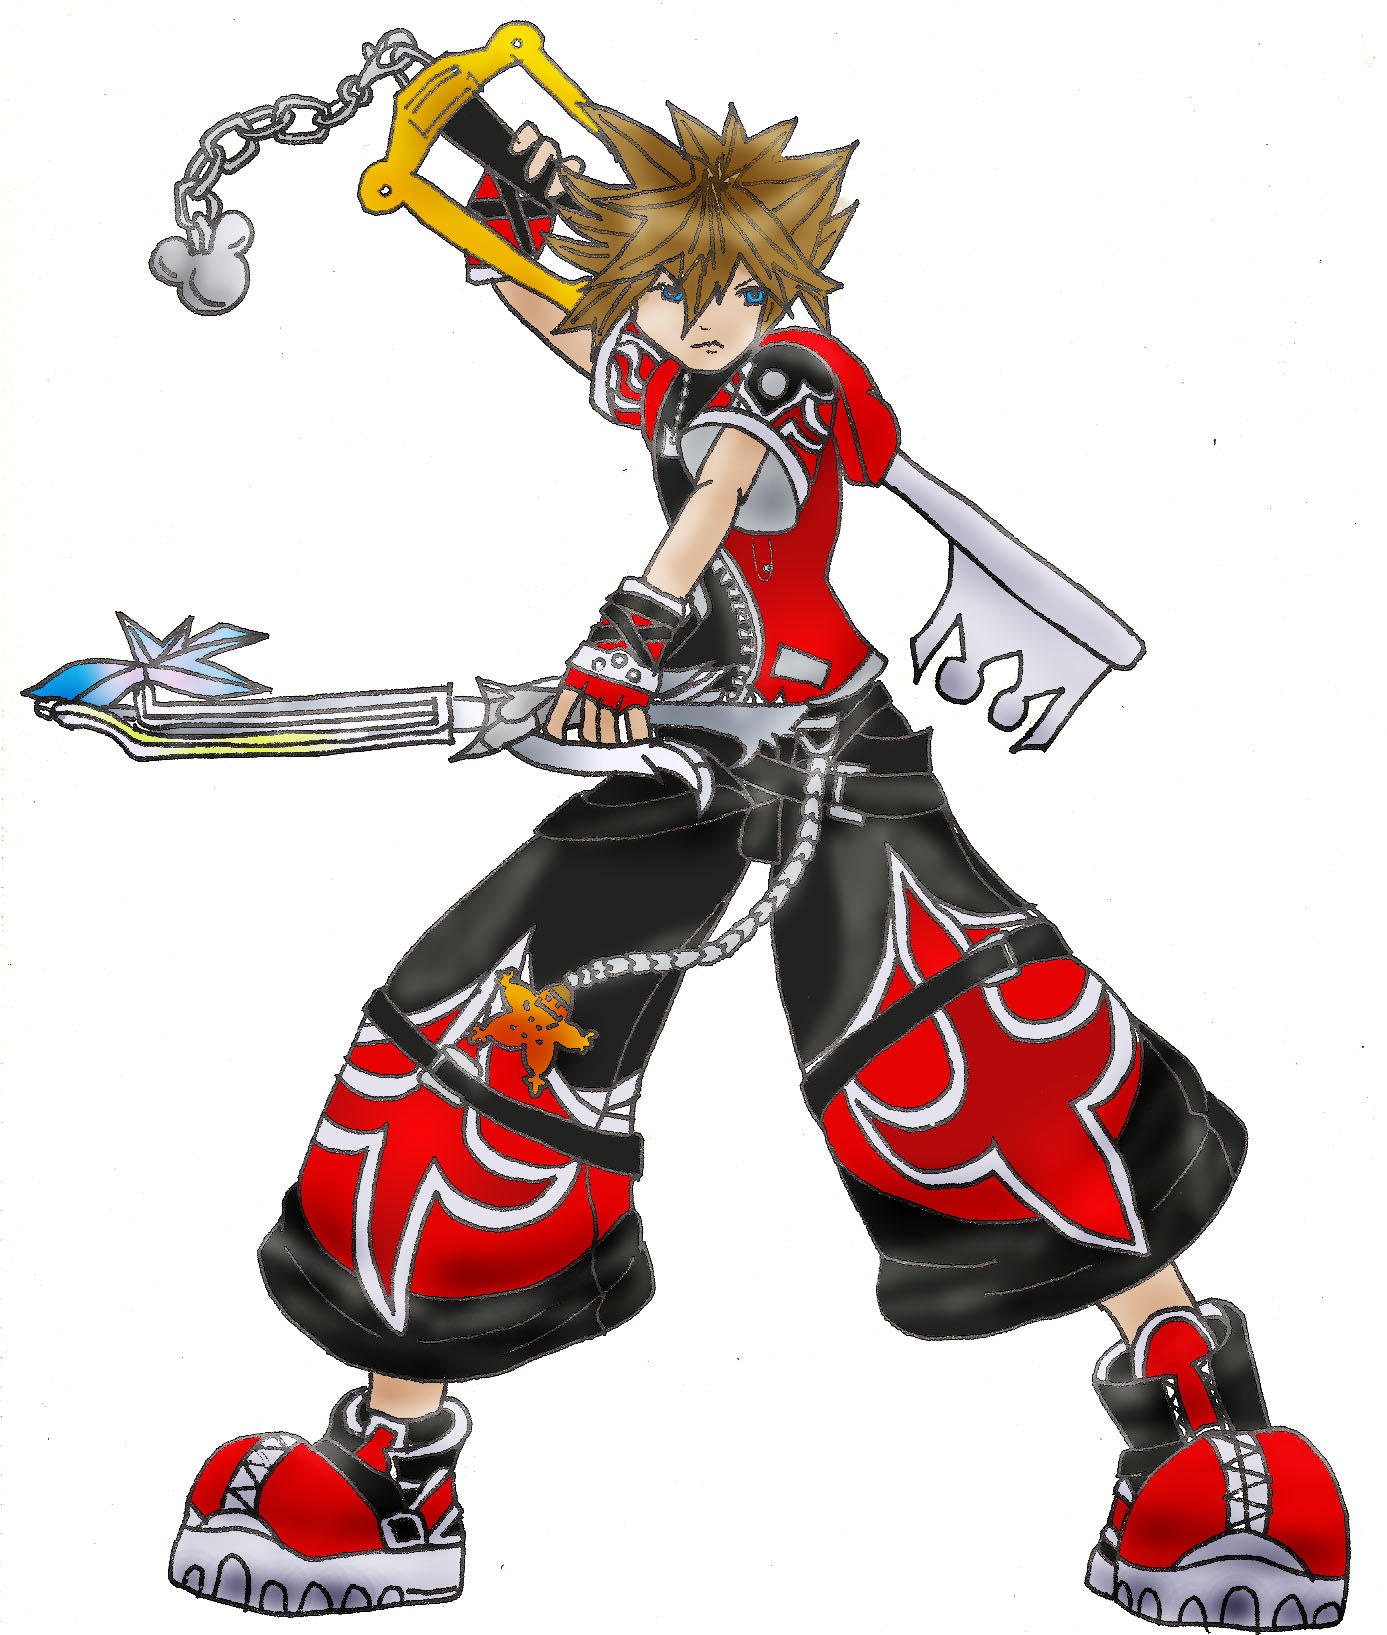 Kingdom Hearts 2-Valor Form by arvalis on DeviantArt